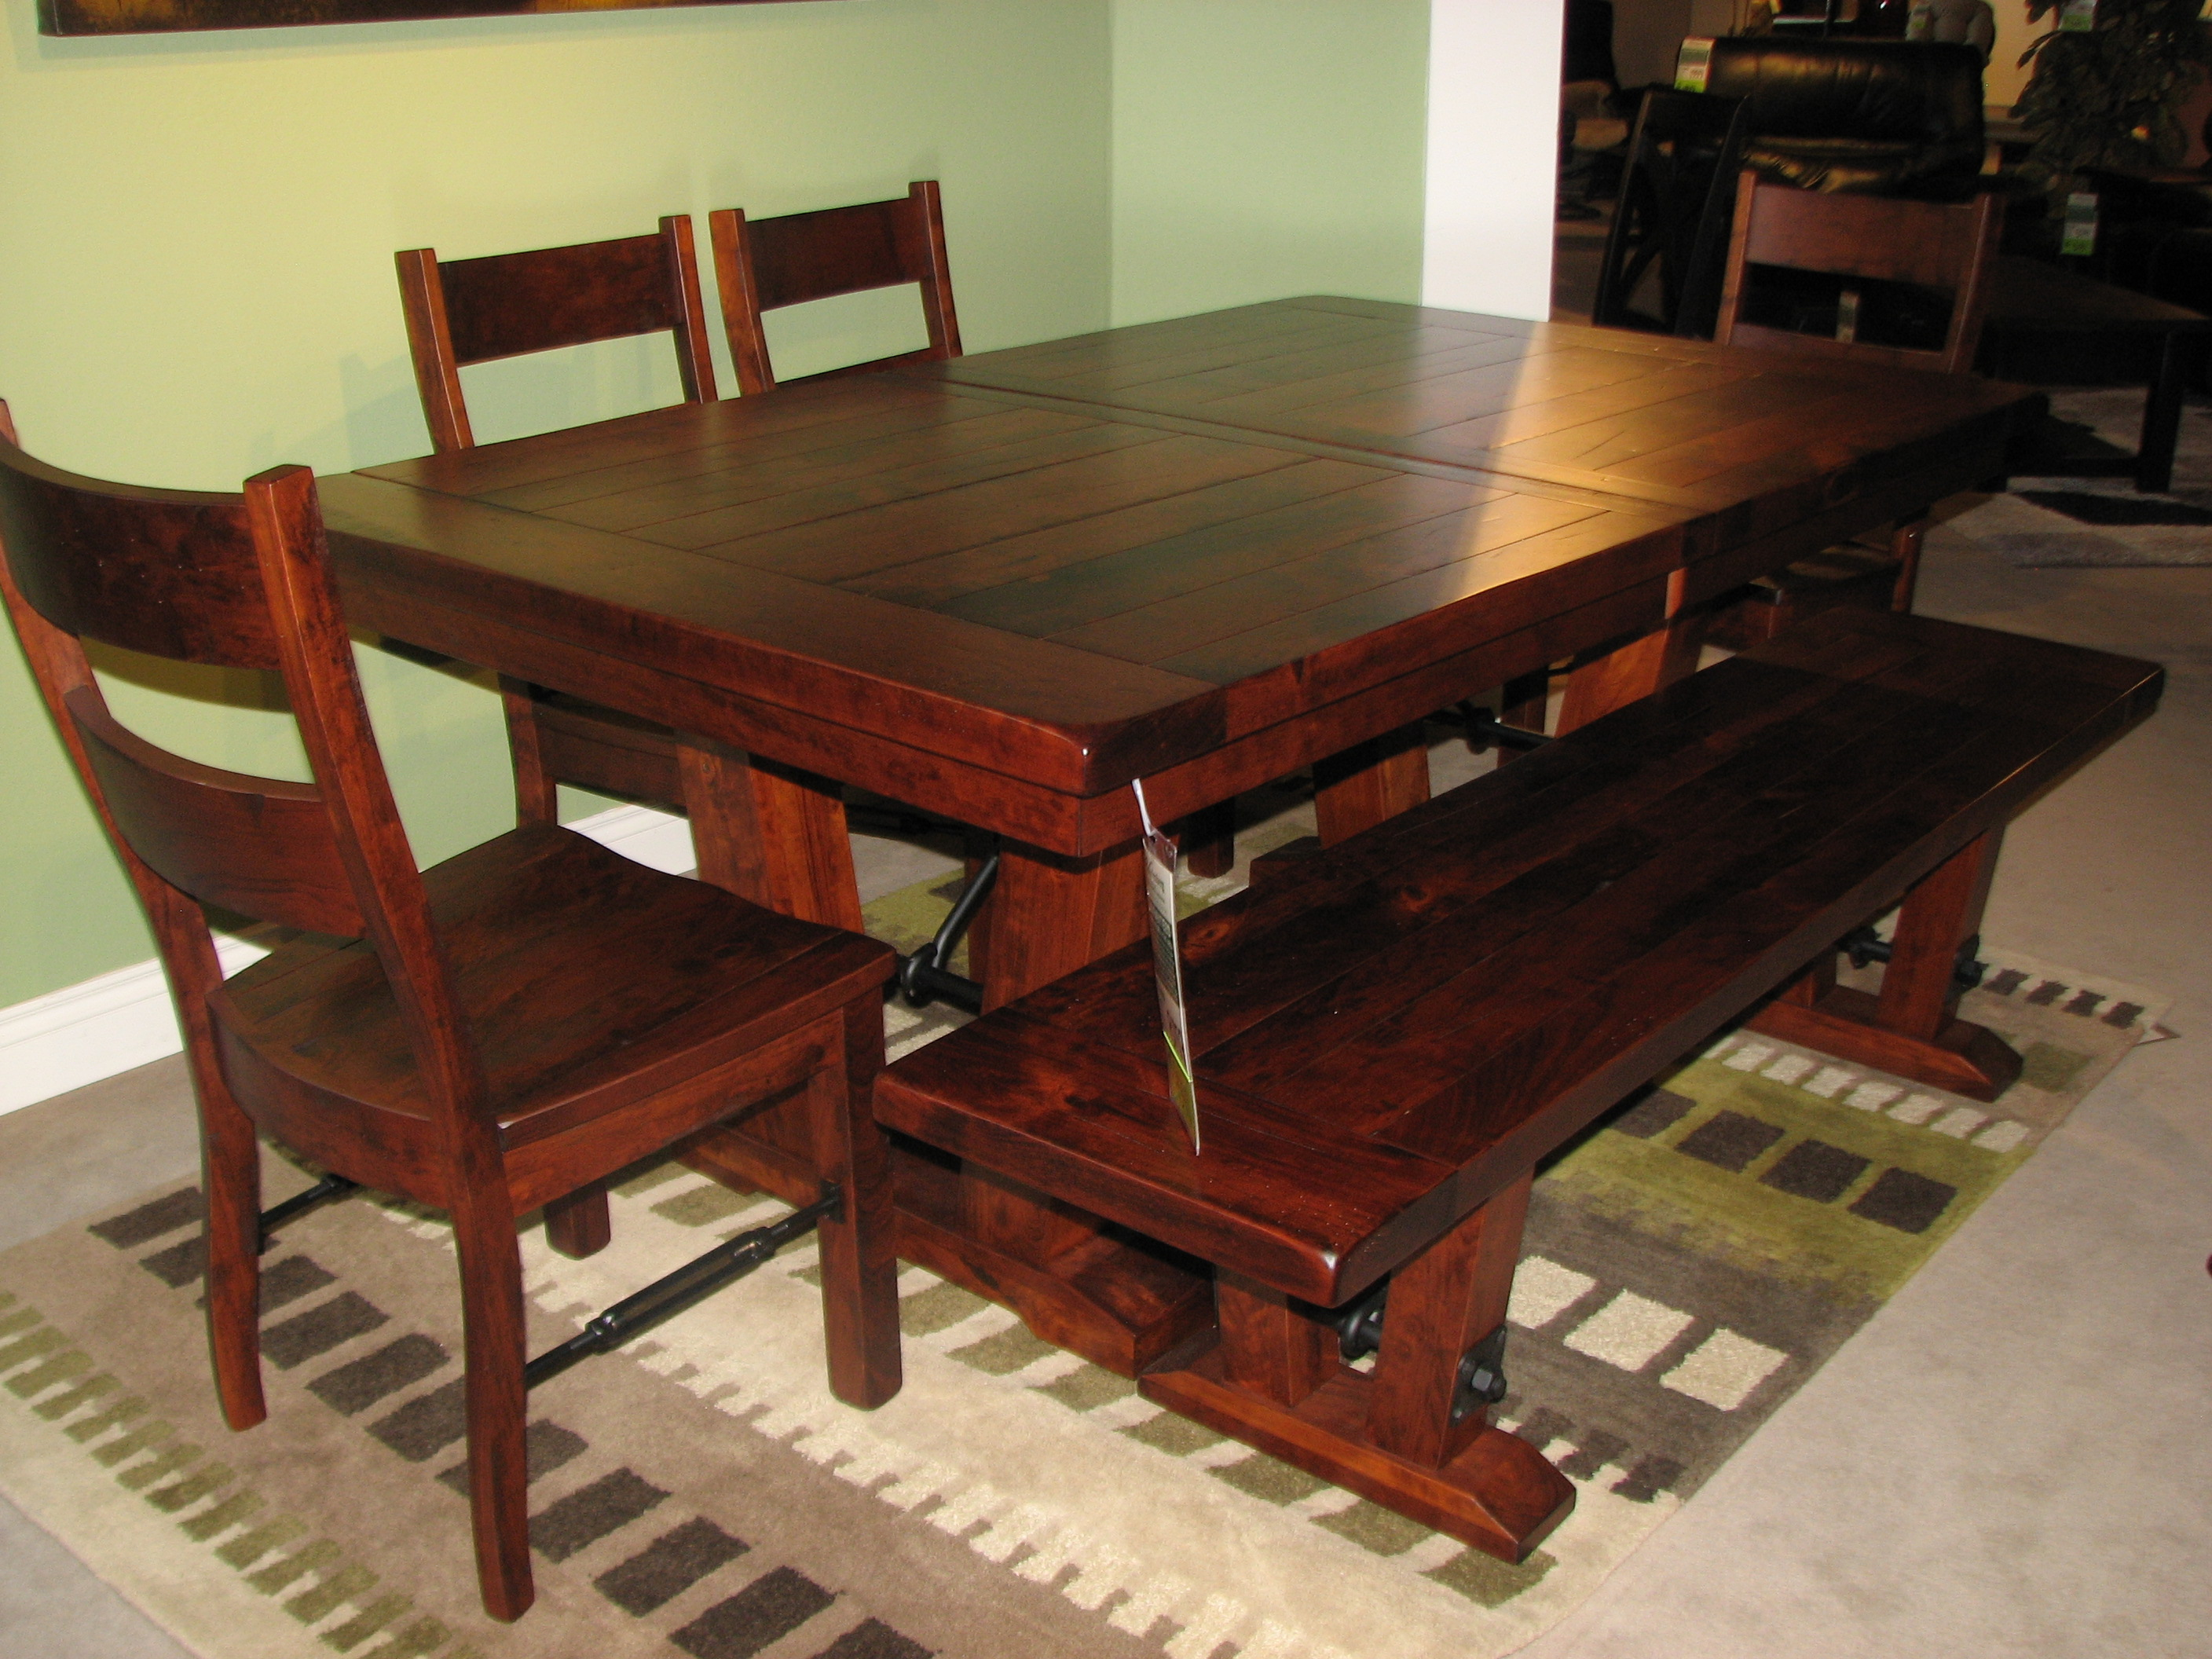 table ideas some a hospitality unfold bench old ikea gamleby room pine with dining rooms grey wood traditional gb gate and good in en fashioned furniture chairs